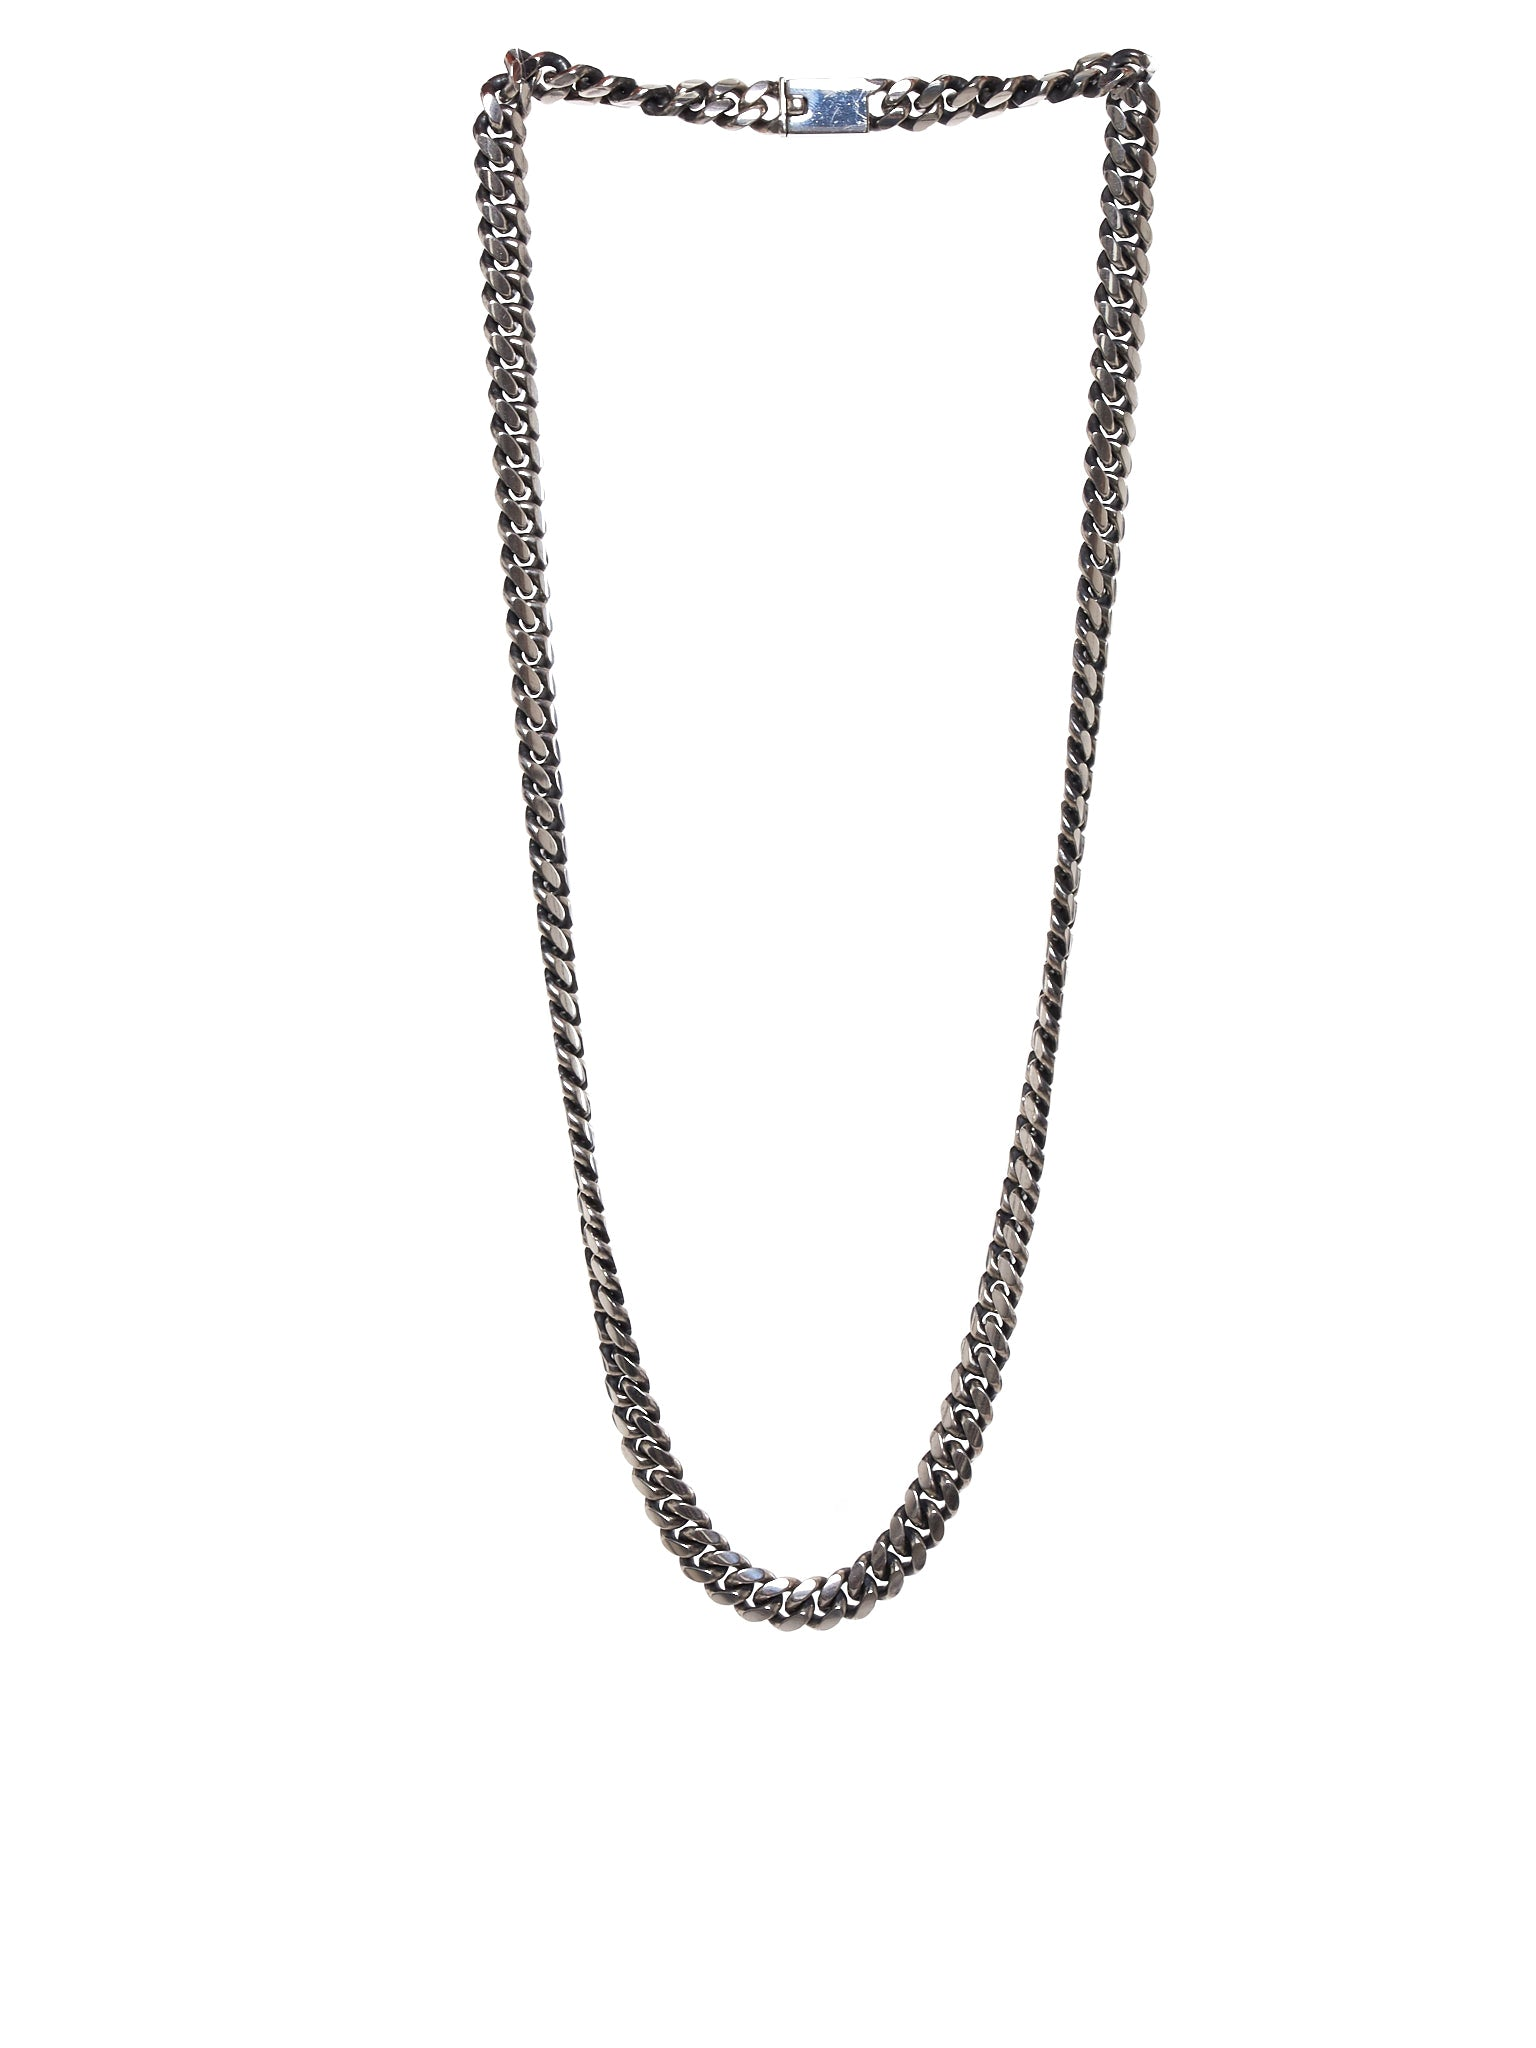 Chain-Link Necklace (HAIVE-MALO-SILVERCAMEL-BONE)